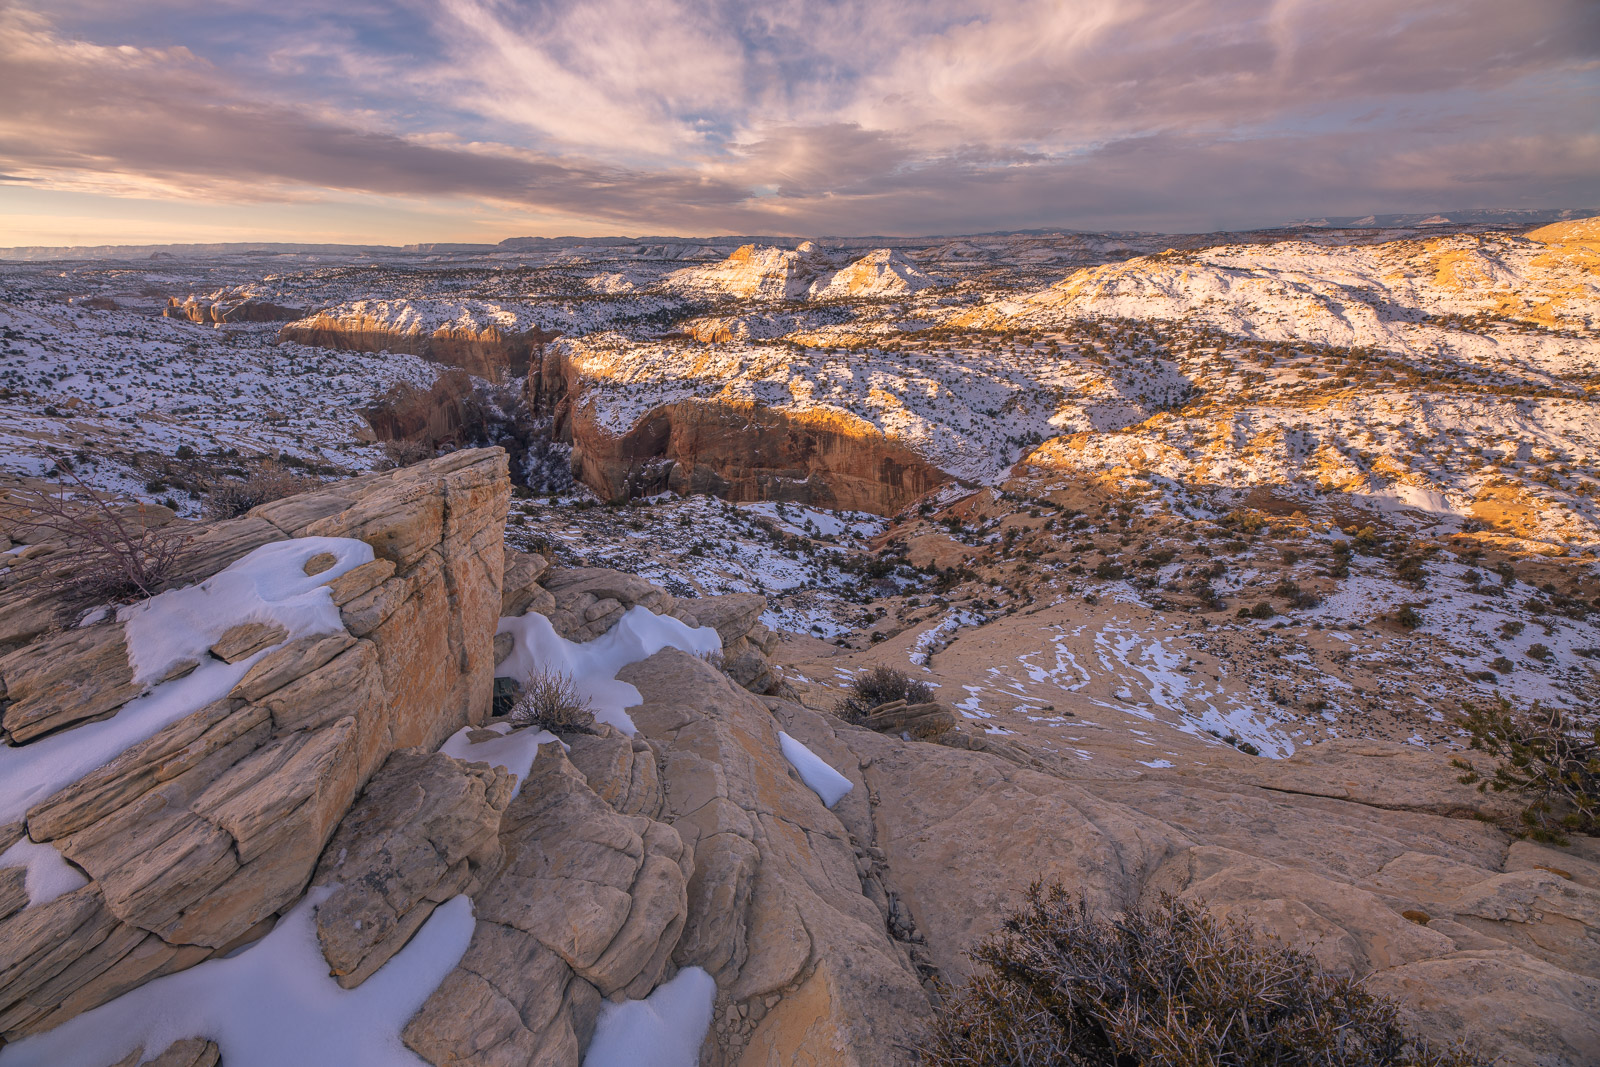 A snowy landscape as seen from above Calf Creek Canyon, Esclante Wilderness, Utah.